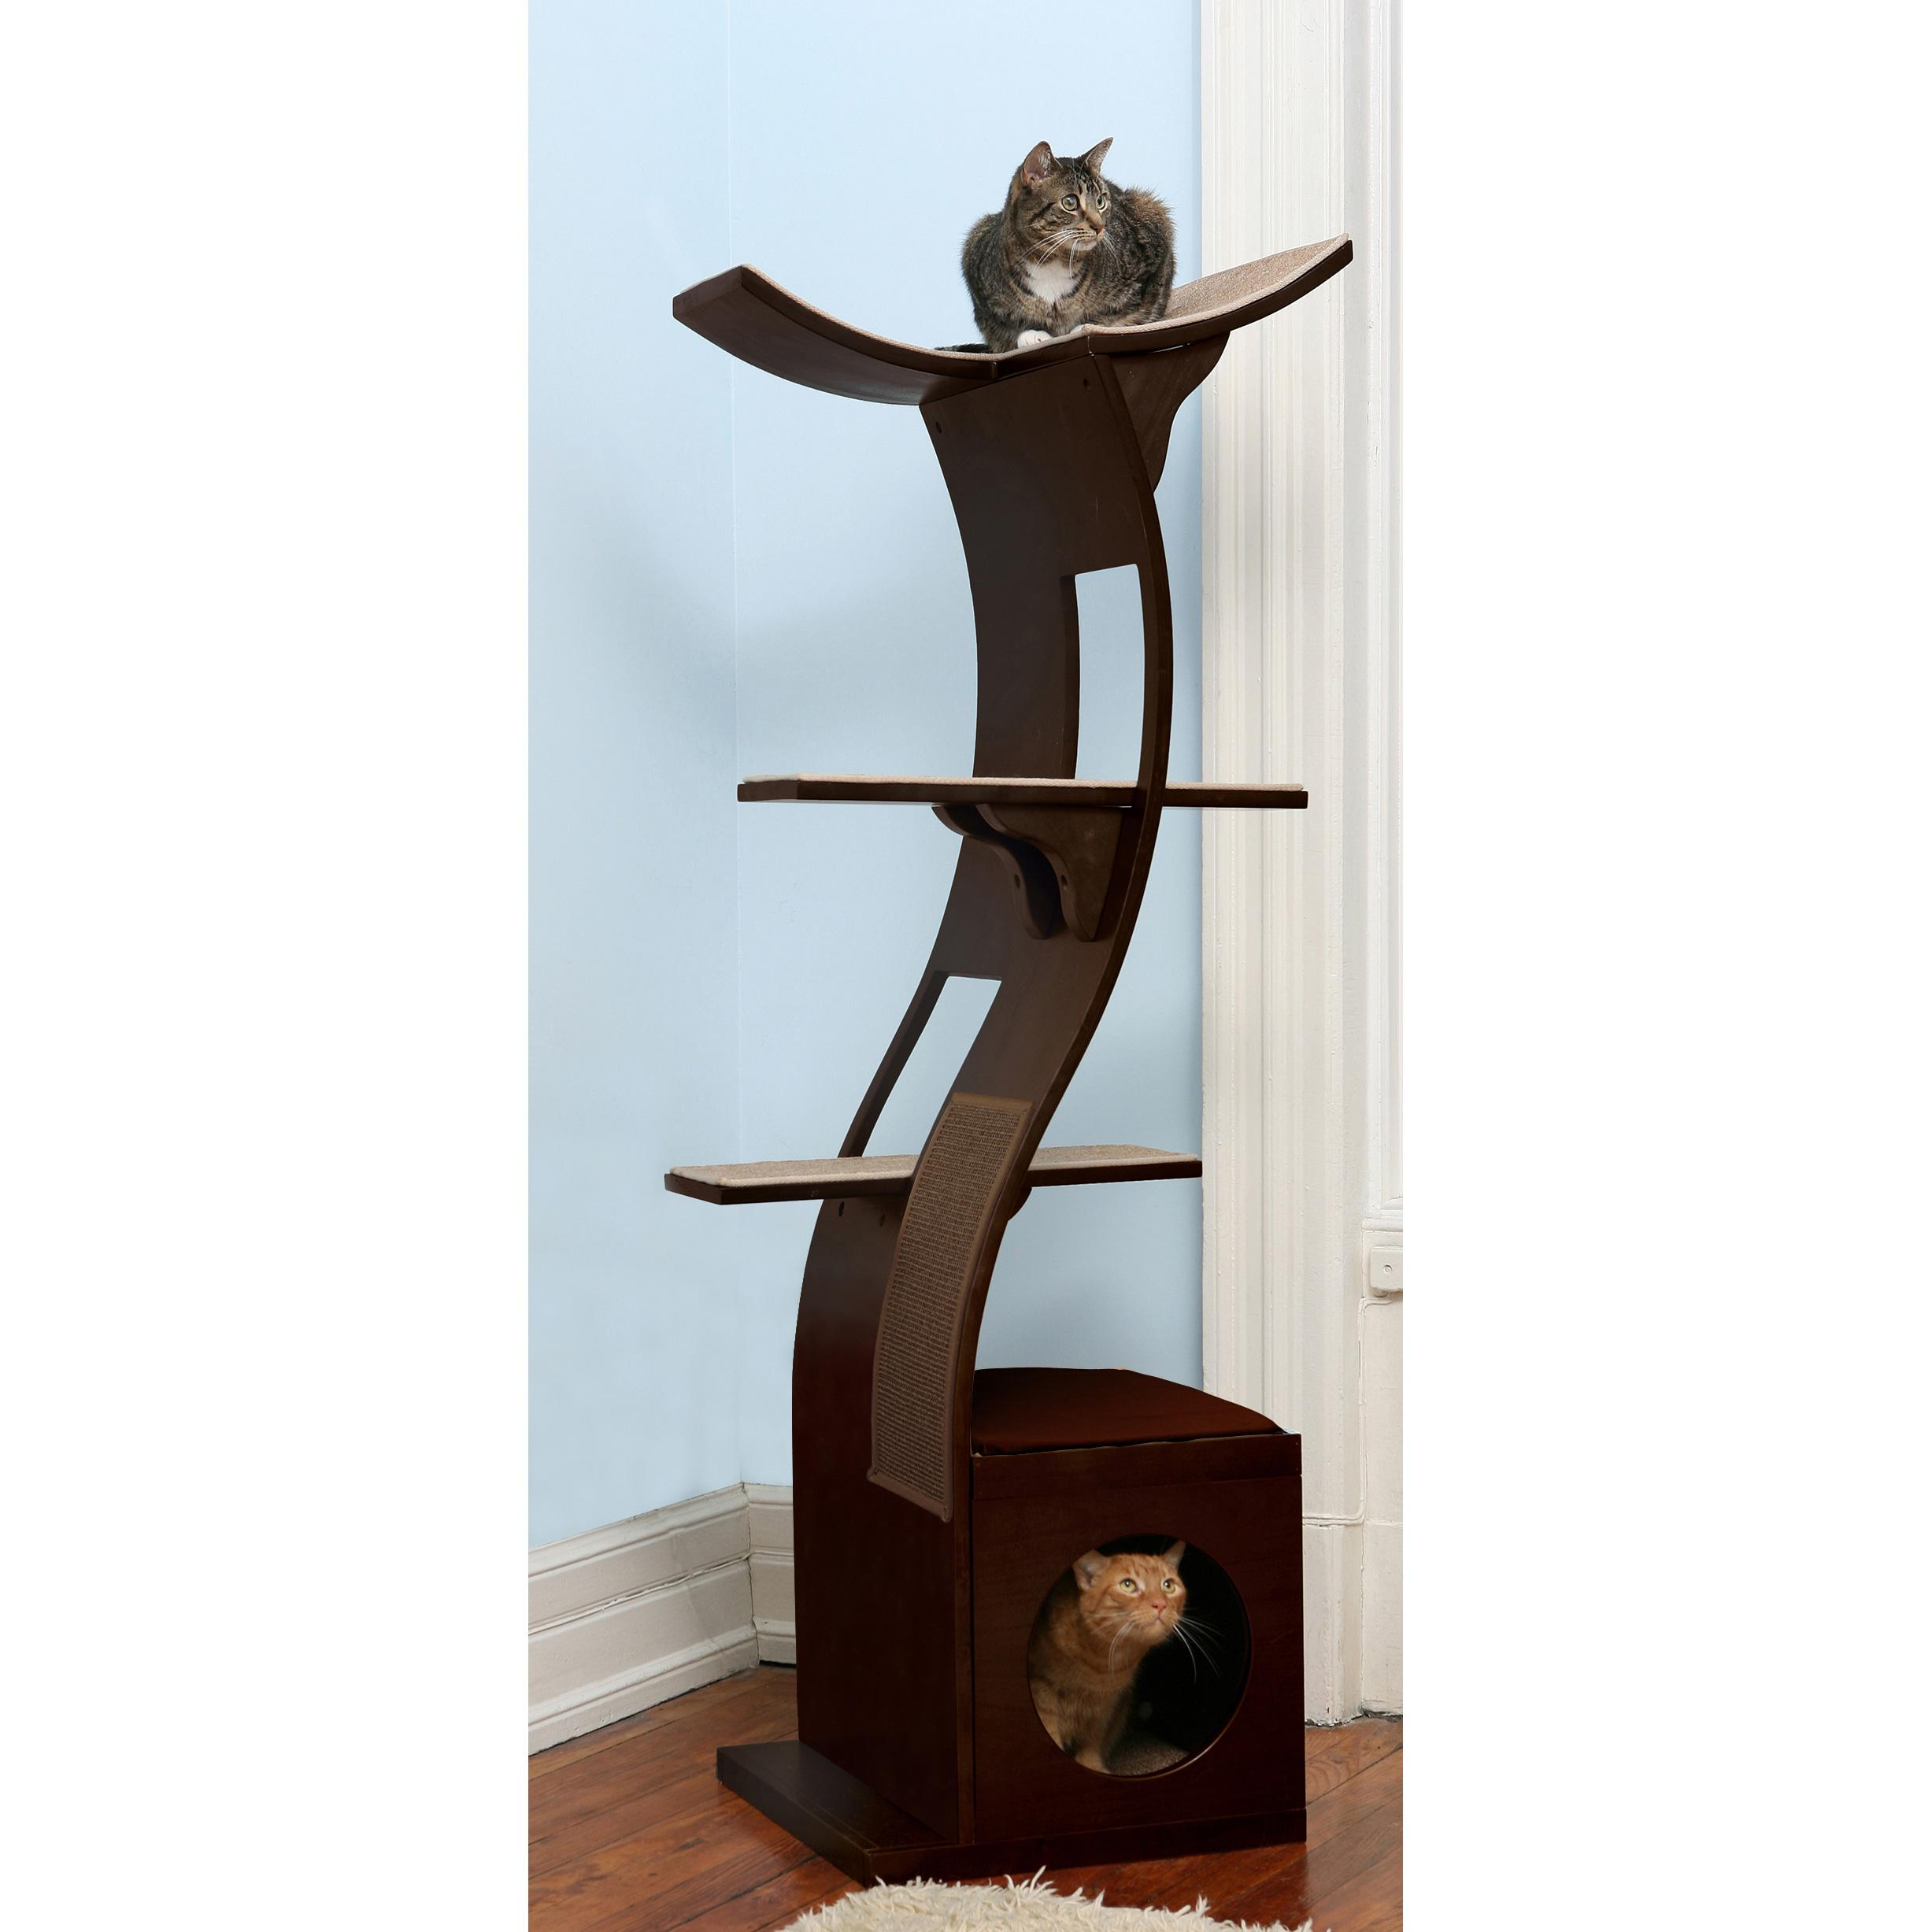 supplies condo armarkat overstock today product furniture free tree cat shipping pet